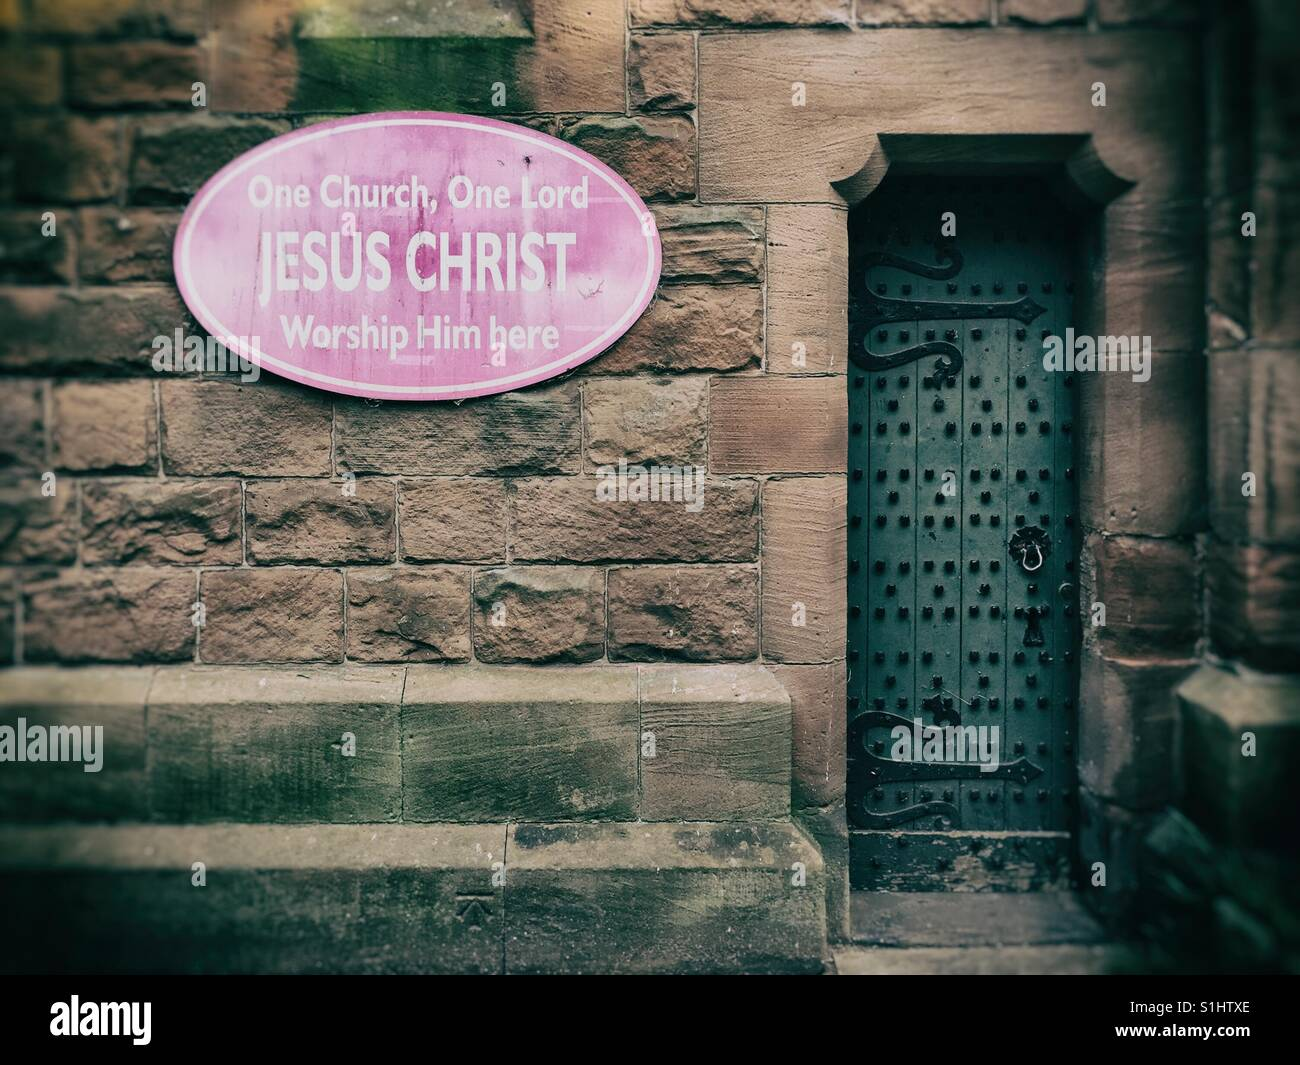 Side entrance of All Saints' Church in Runcorn, Cheshire, UK - Stock Image